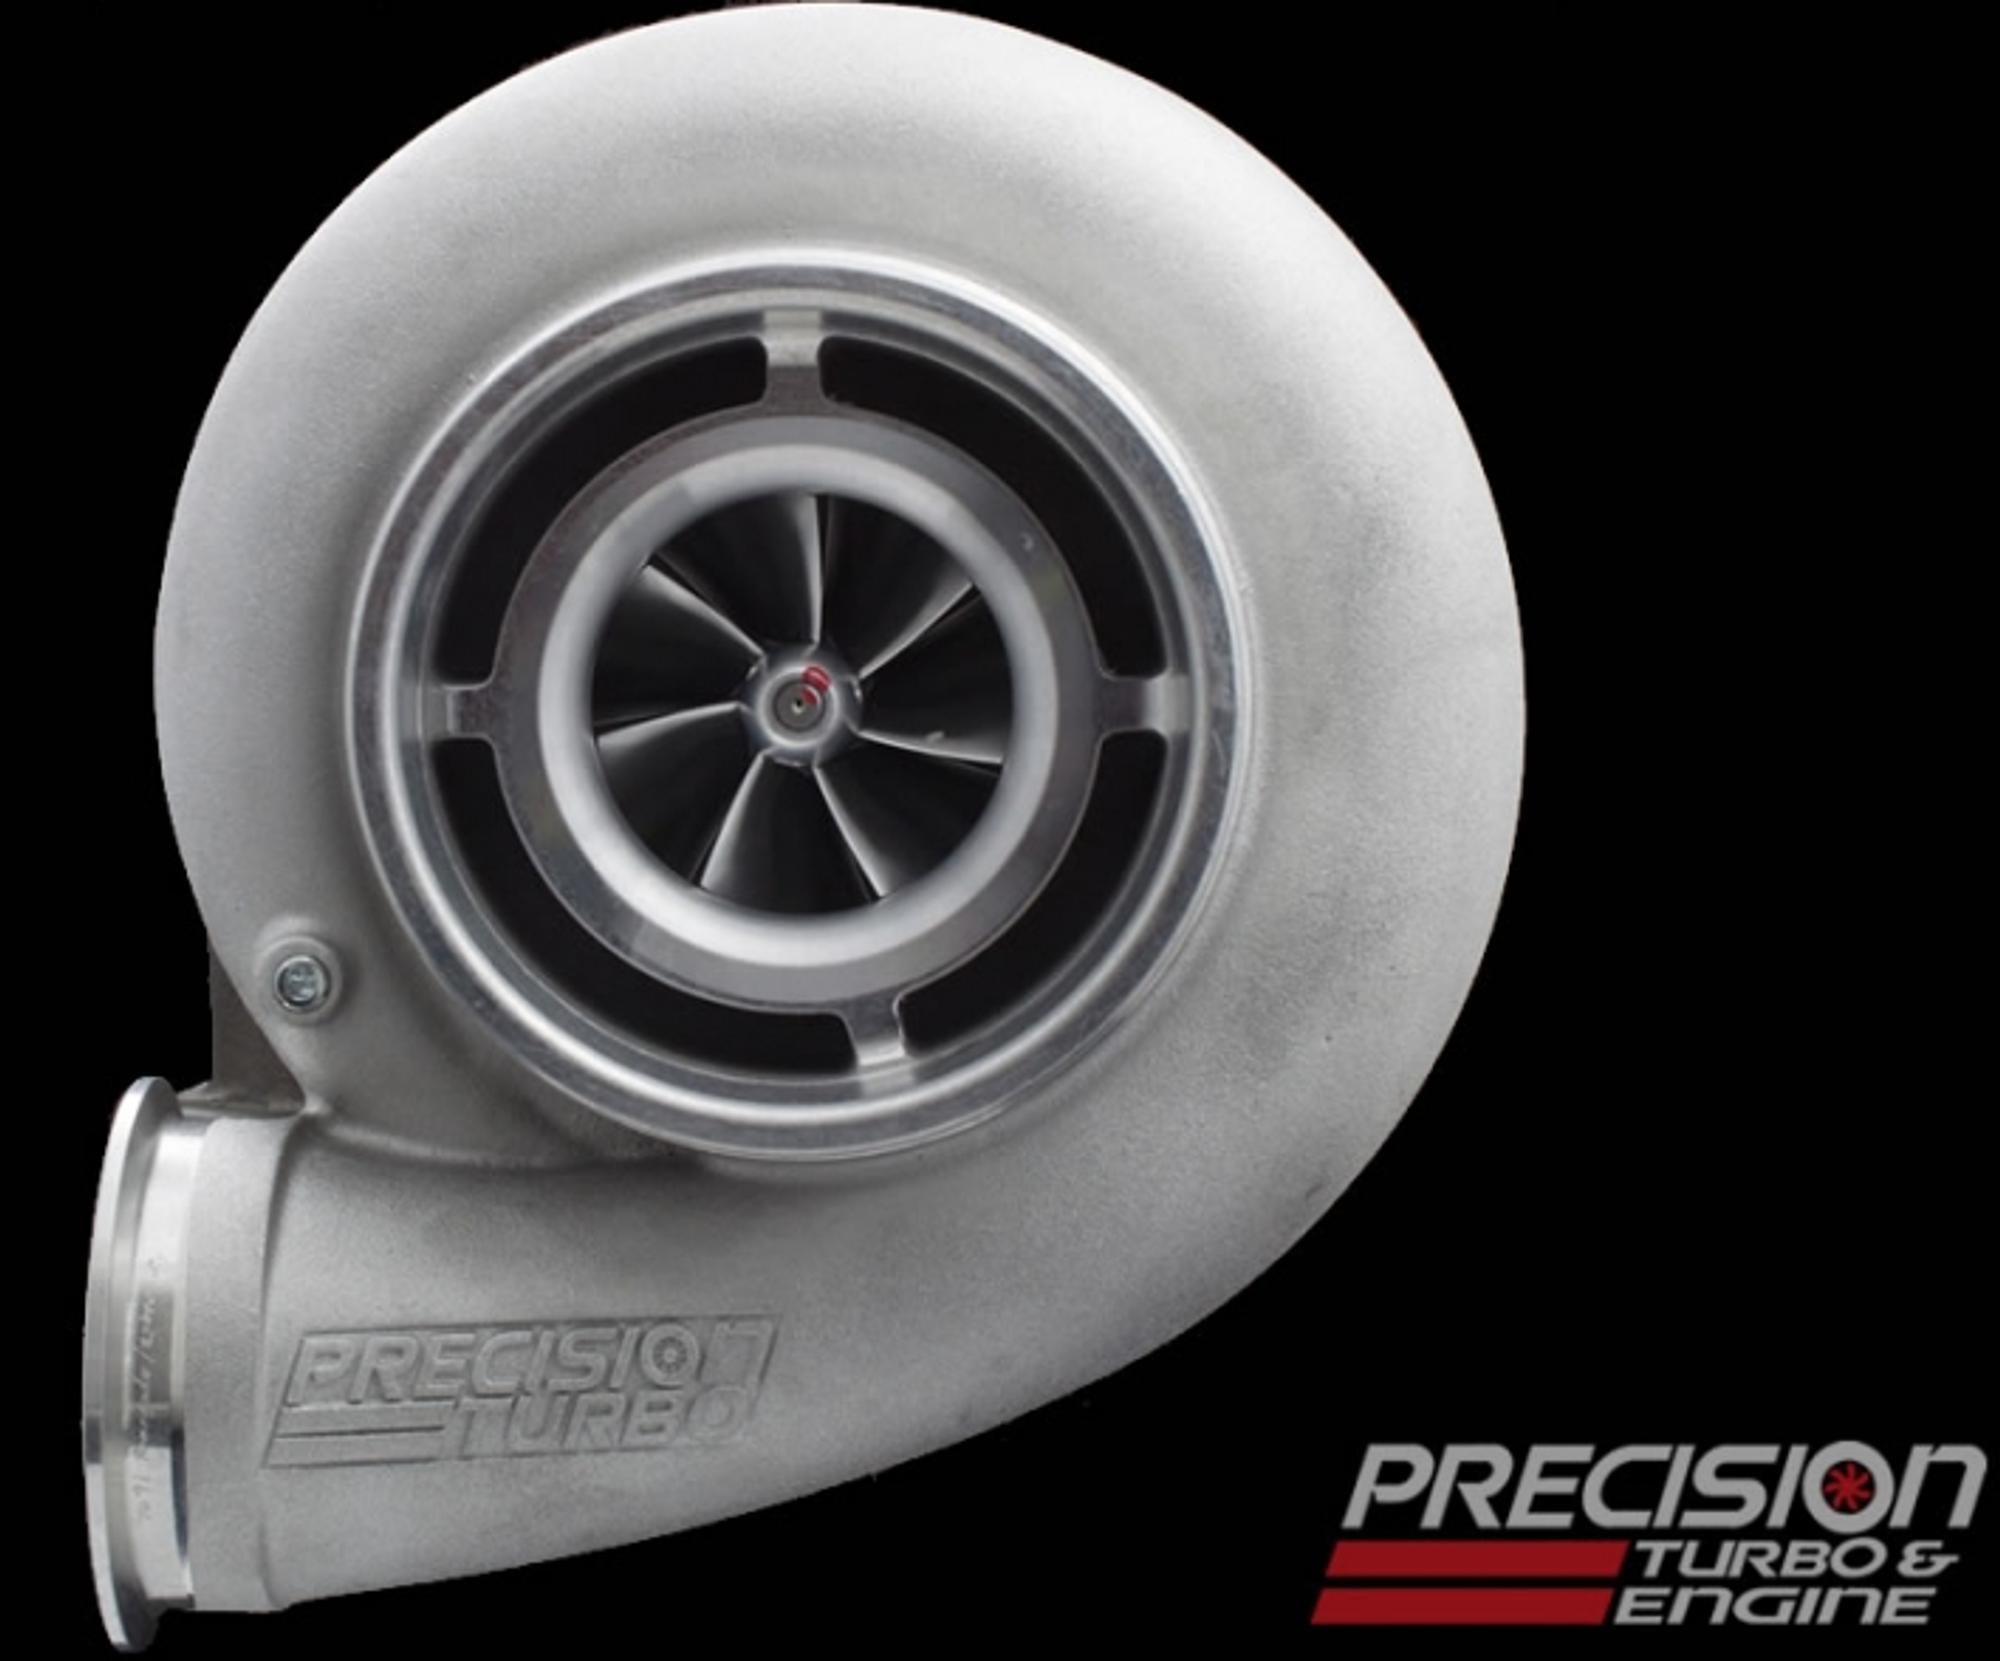 Precision Turbo Class Legal Turbocharger 76mm for NMRA Renegade & NMCA  Xtreme Street, Part #12216224469